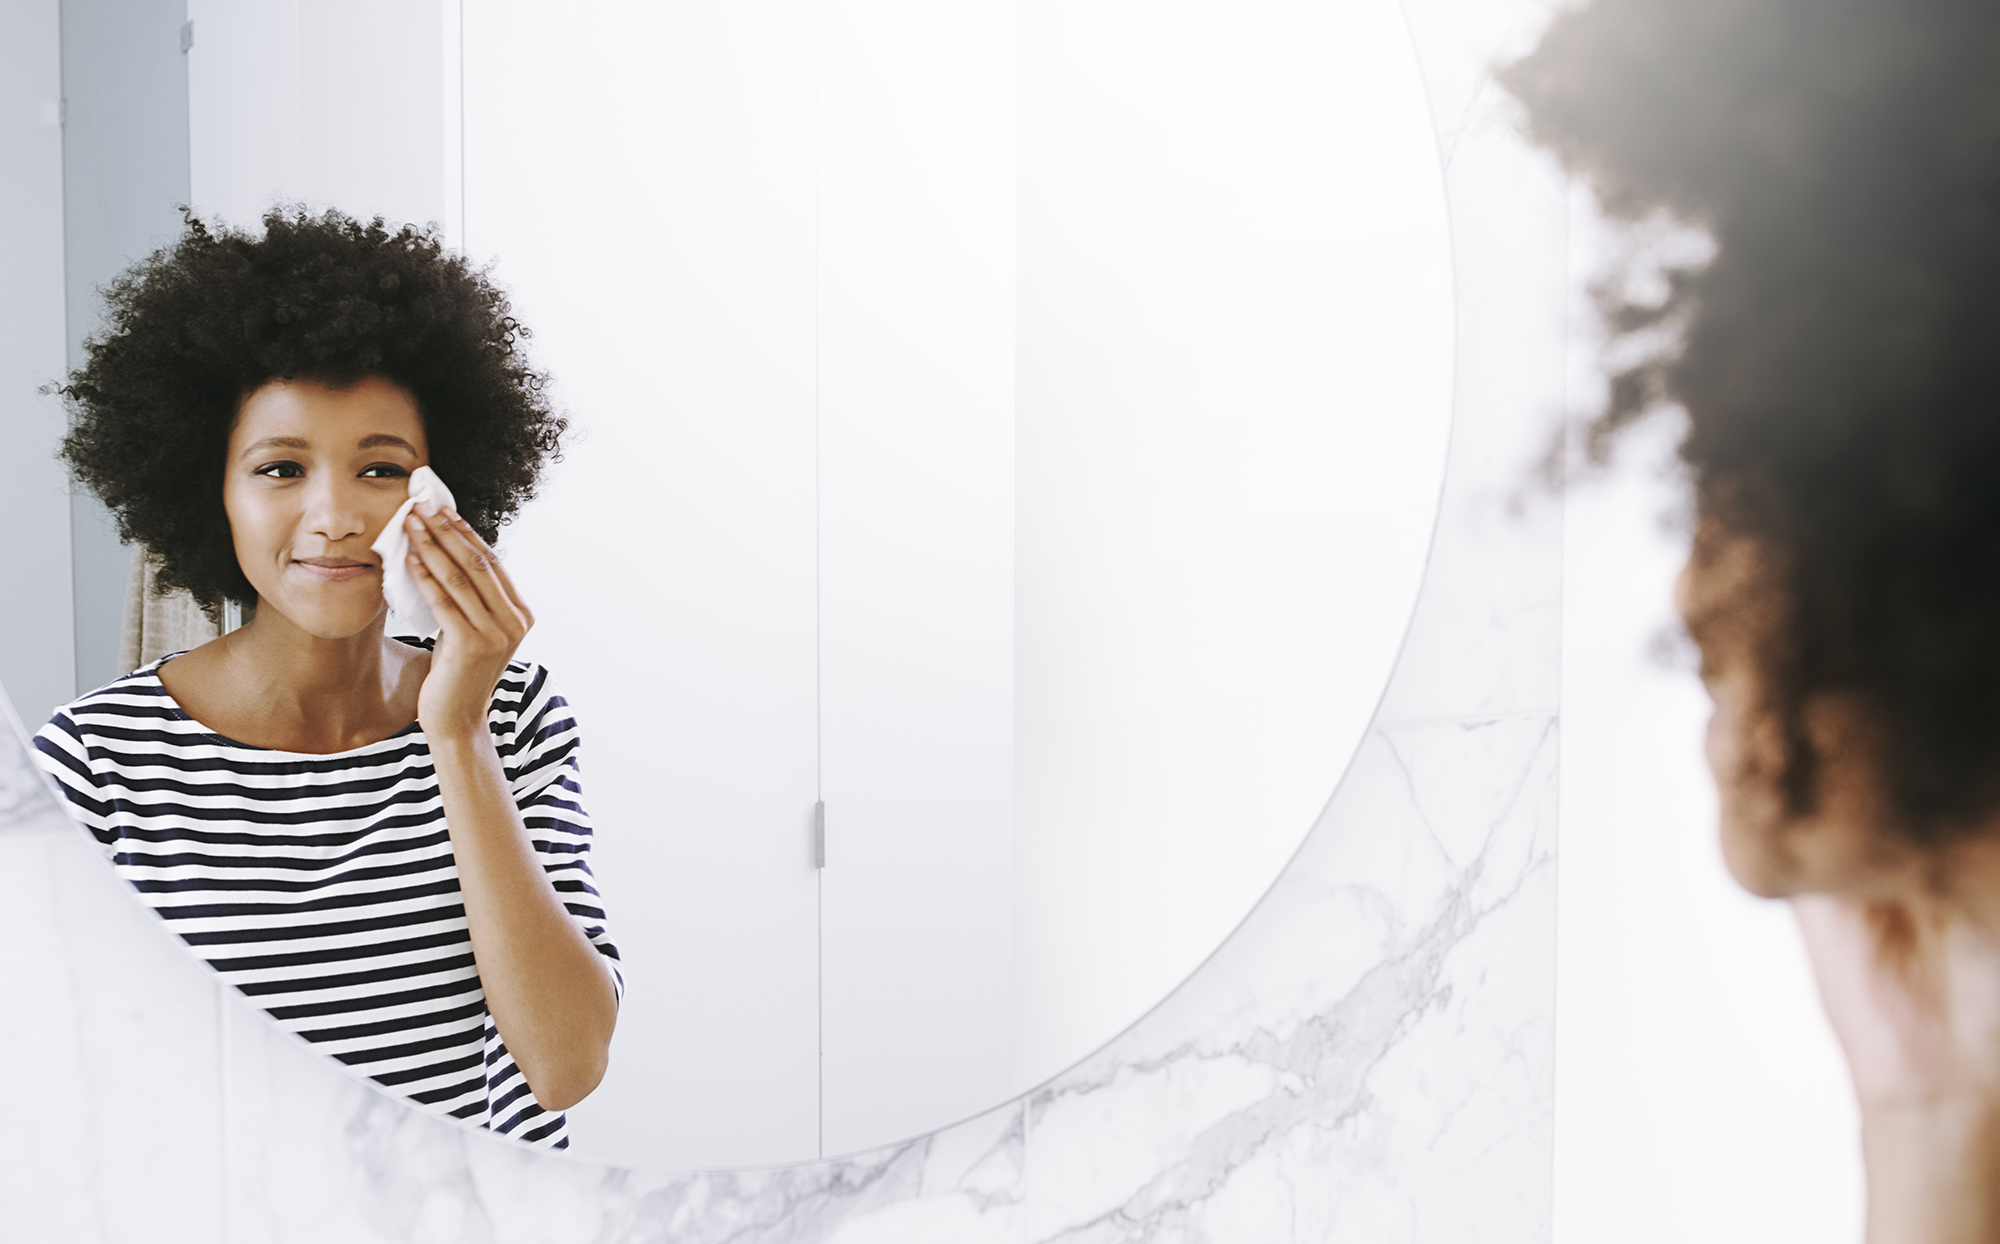 Person looking in mirror and removing makeup